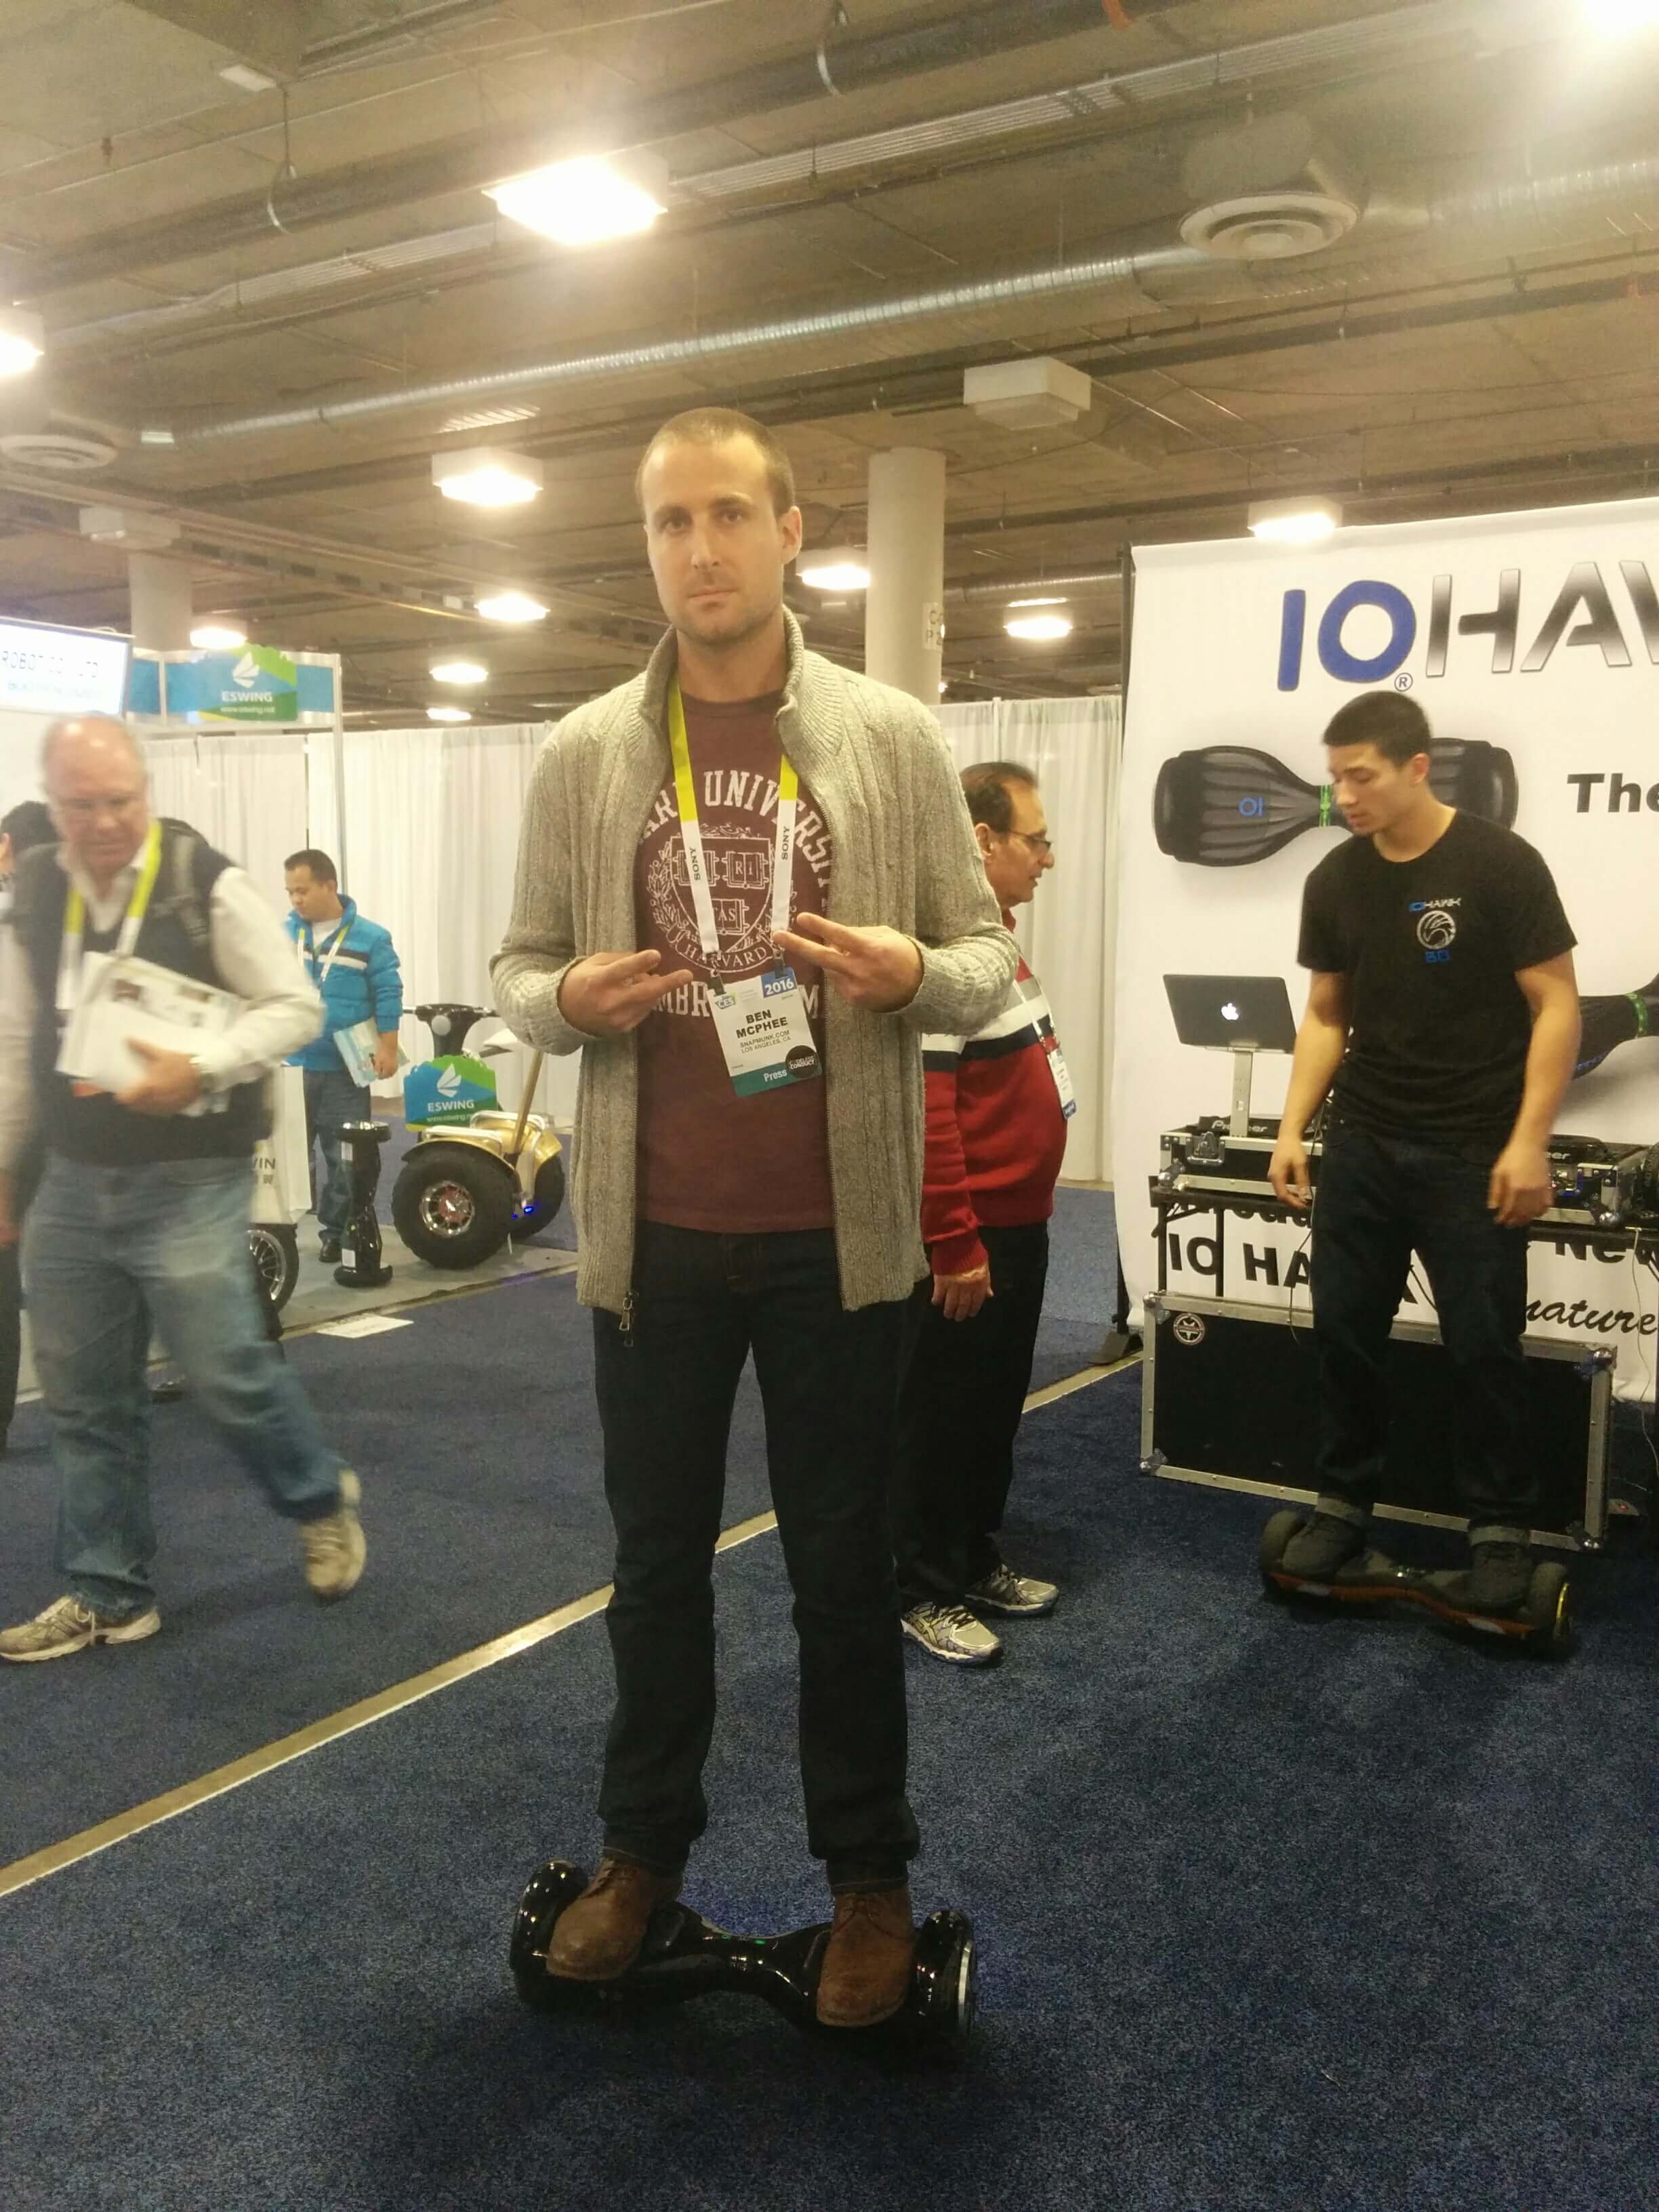 Benjamin Mann on IO Hawk hoverboard at CES 2016